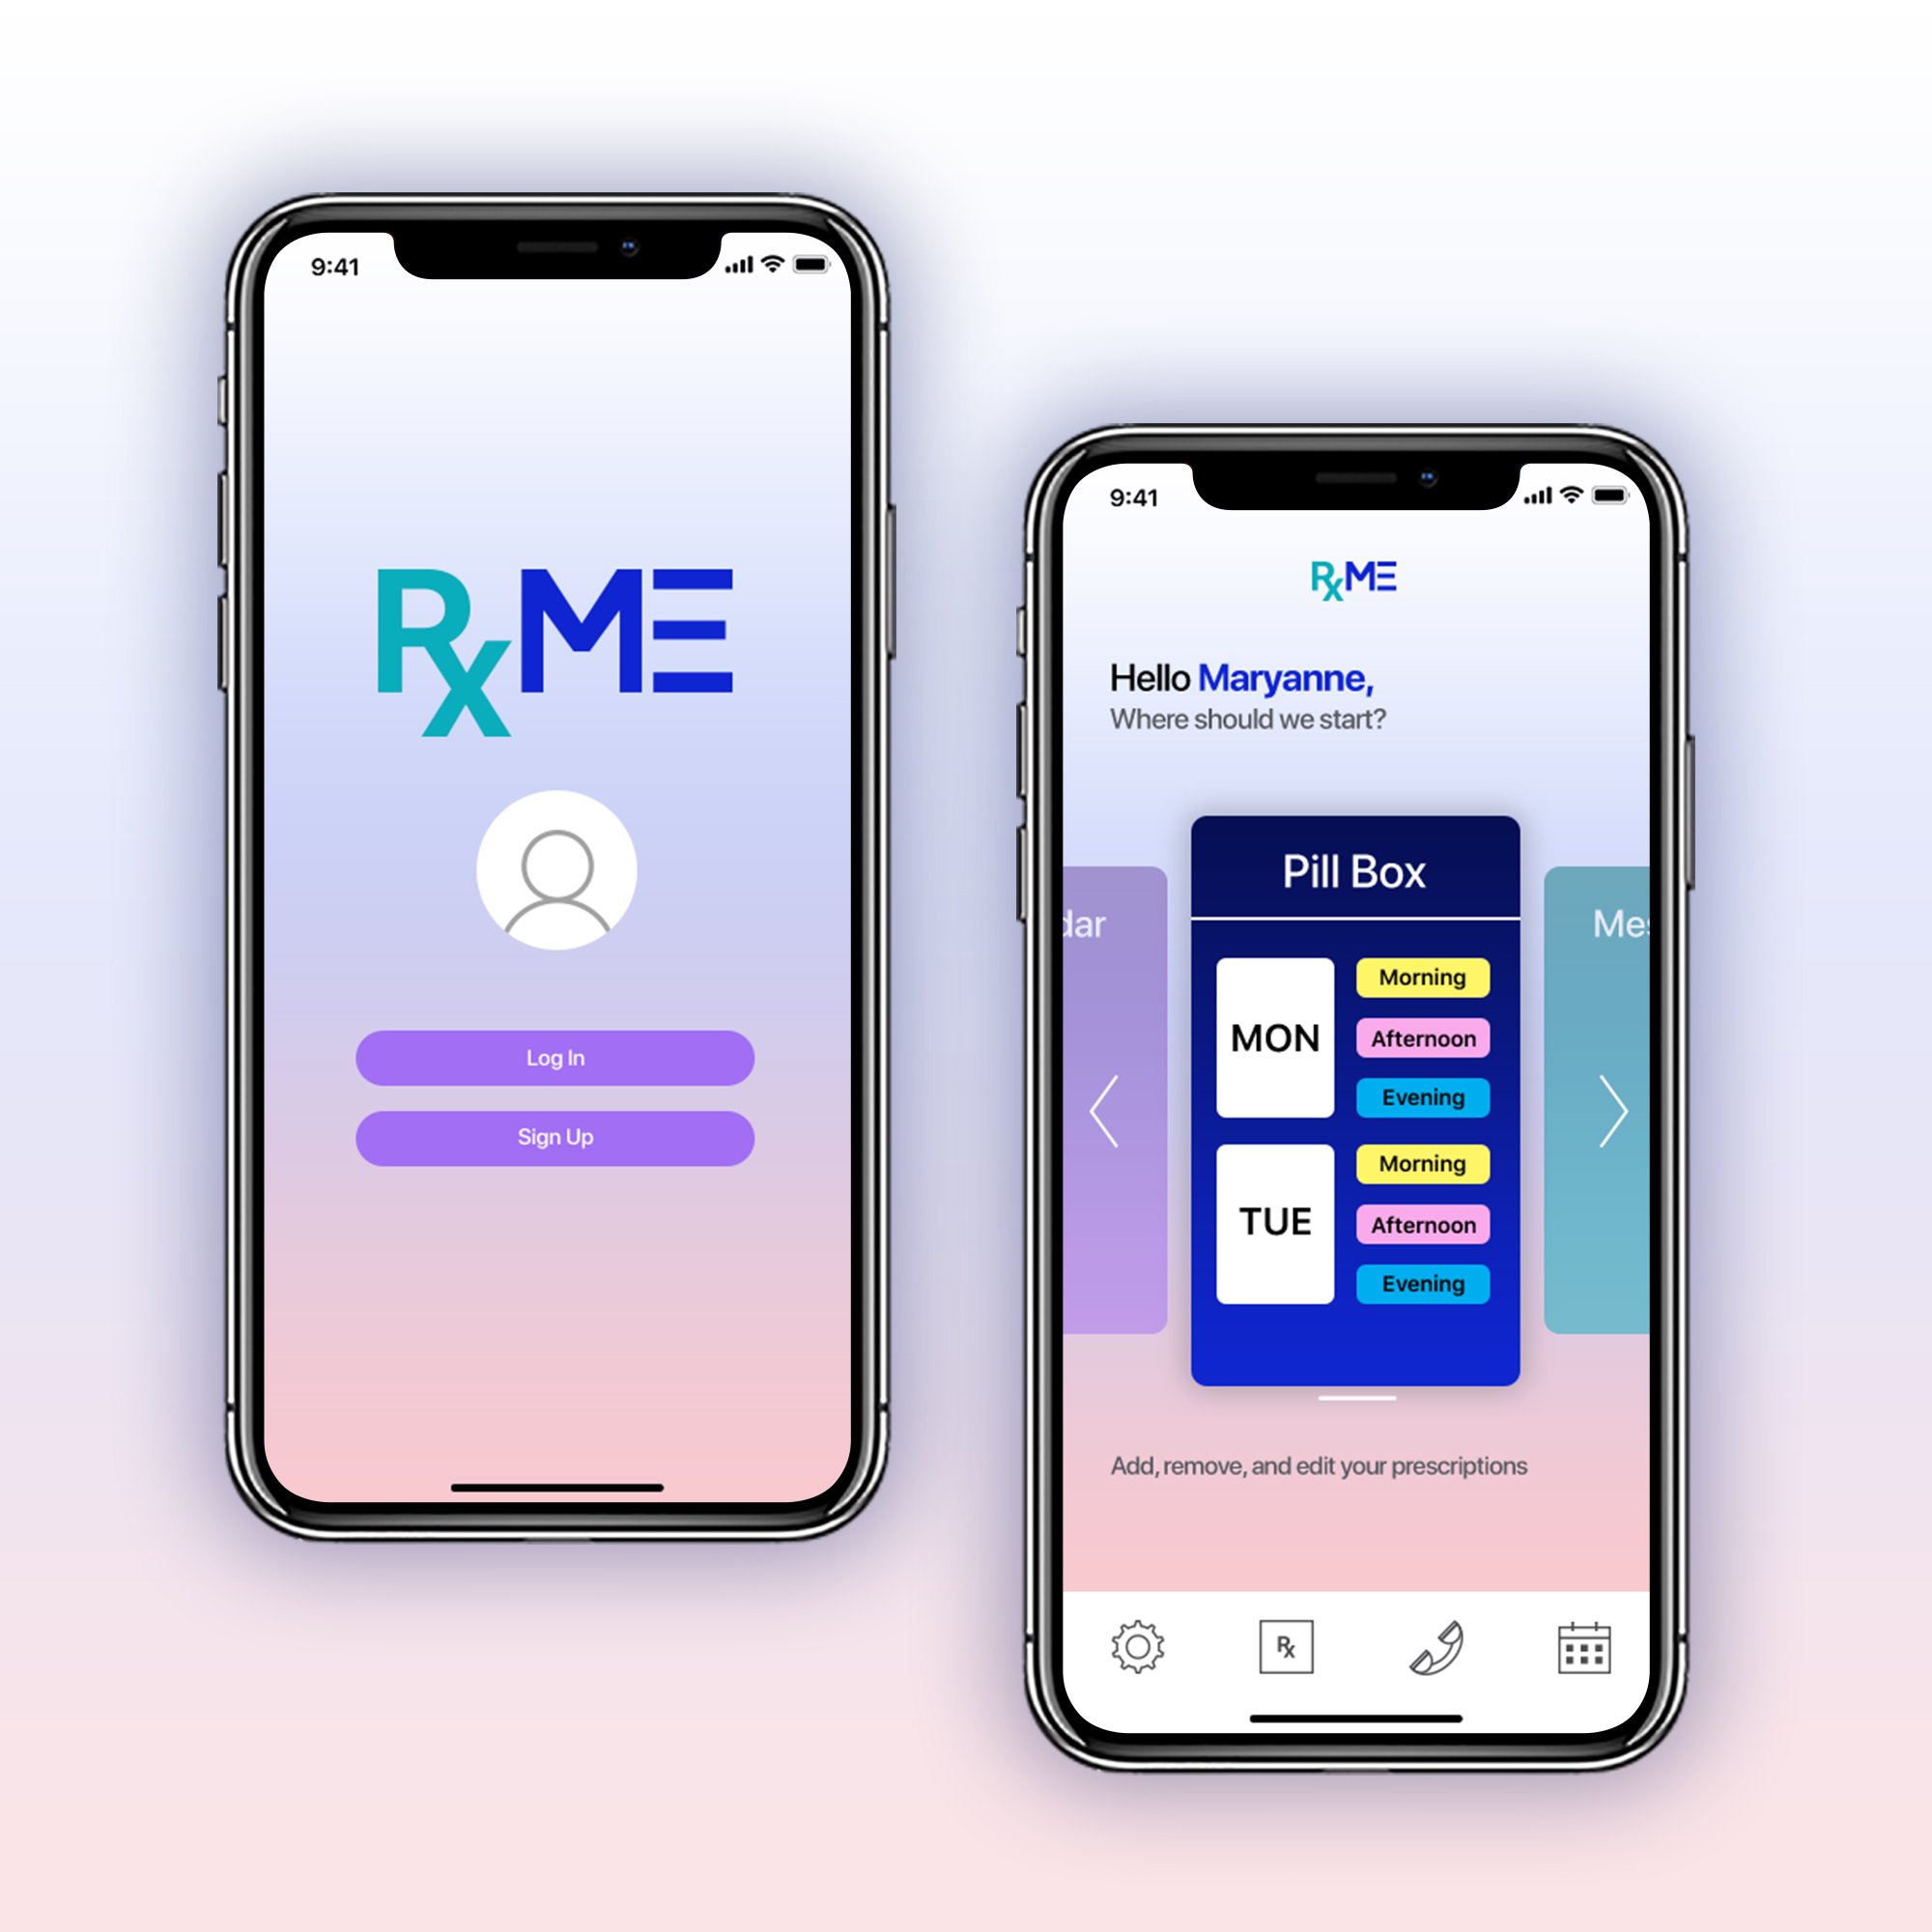 Prescribe Me - Project: Automated Medication AppRoles: Logo Design, Branding Guides, UI DesignAbout: Prescribe Me is an all inclusive application that lets the user fill in his/her medical information and will alert the user when medications need to be taken, refilled, possible interactions with other medications, and give the user the ability to message his/her doctor with any questions. It will also sync up with the users local pharmacy and directly message them when prompted to refill his/her medication.